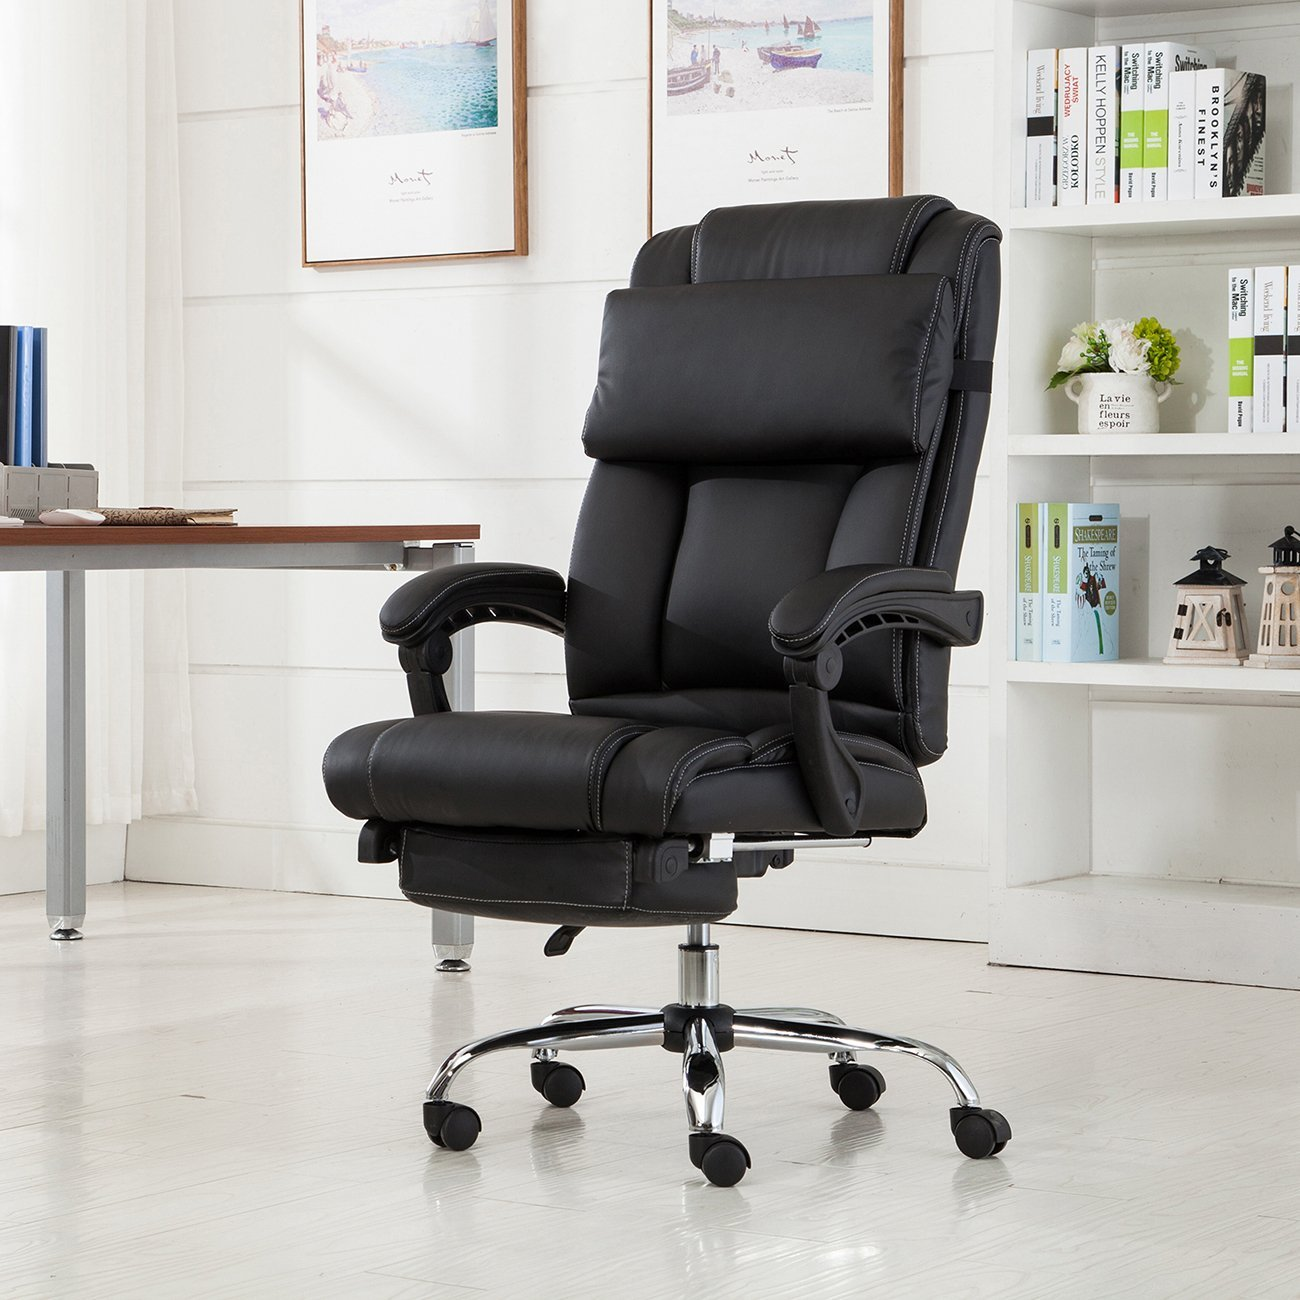 reclining recliner luxury computer sentinel point massage foxhunter var itm leather swivel office chair